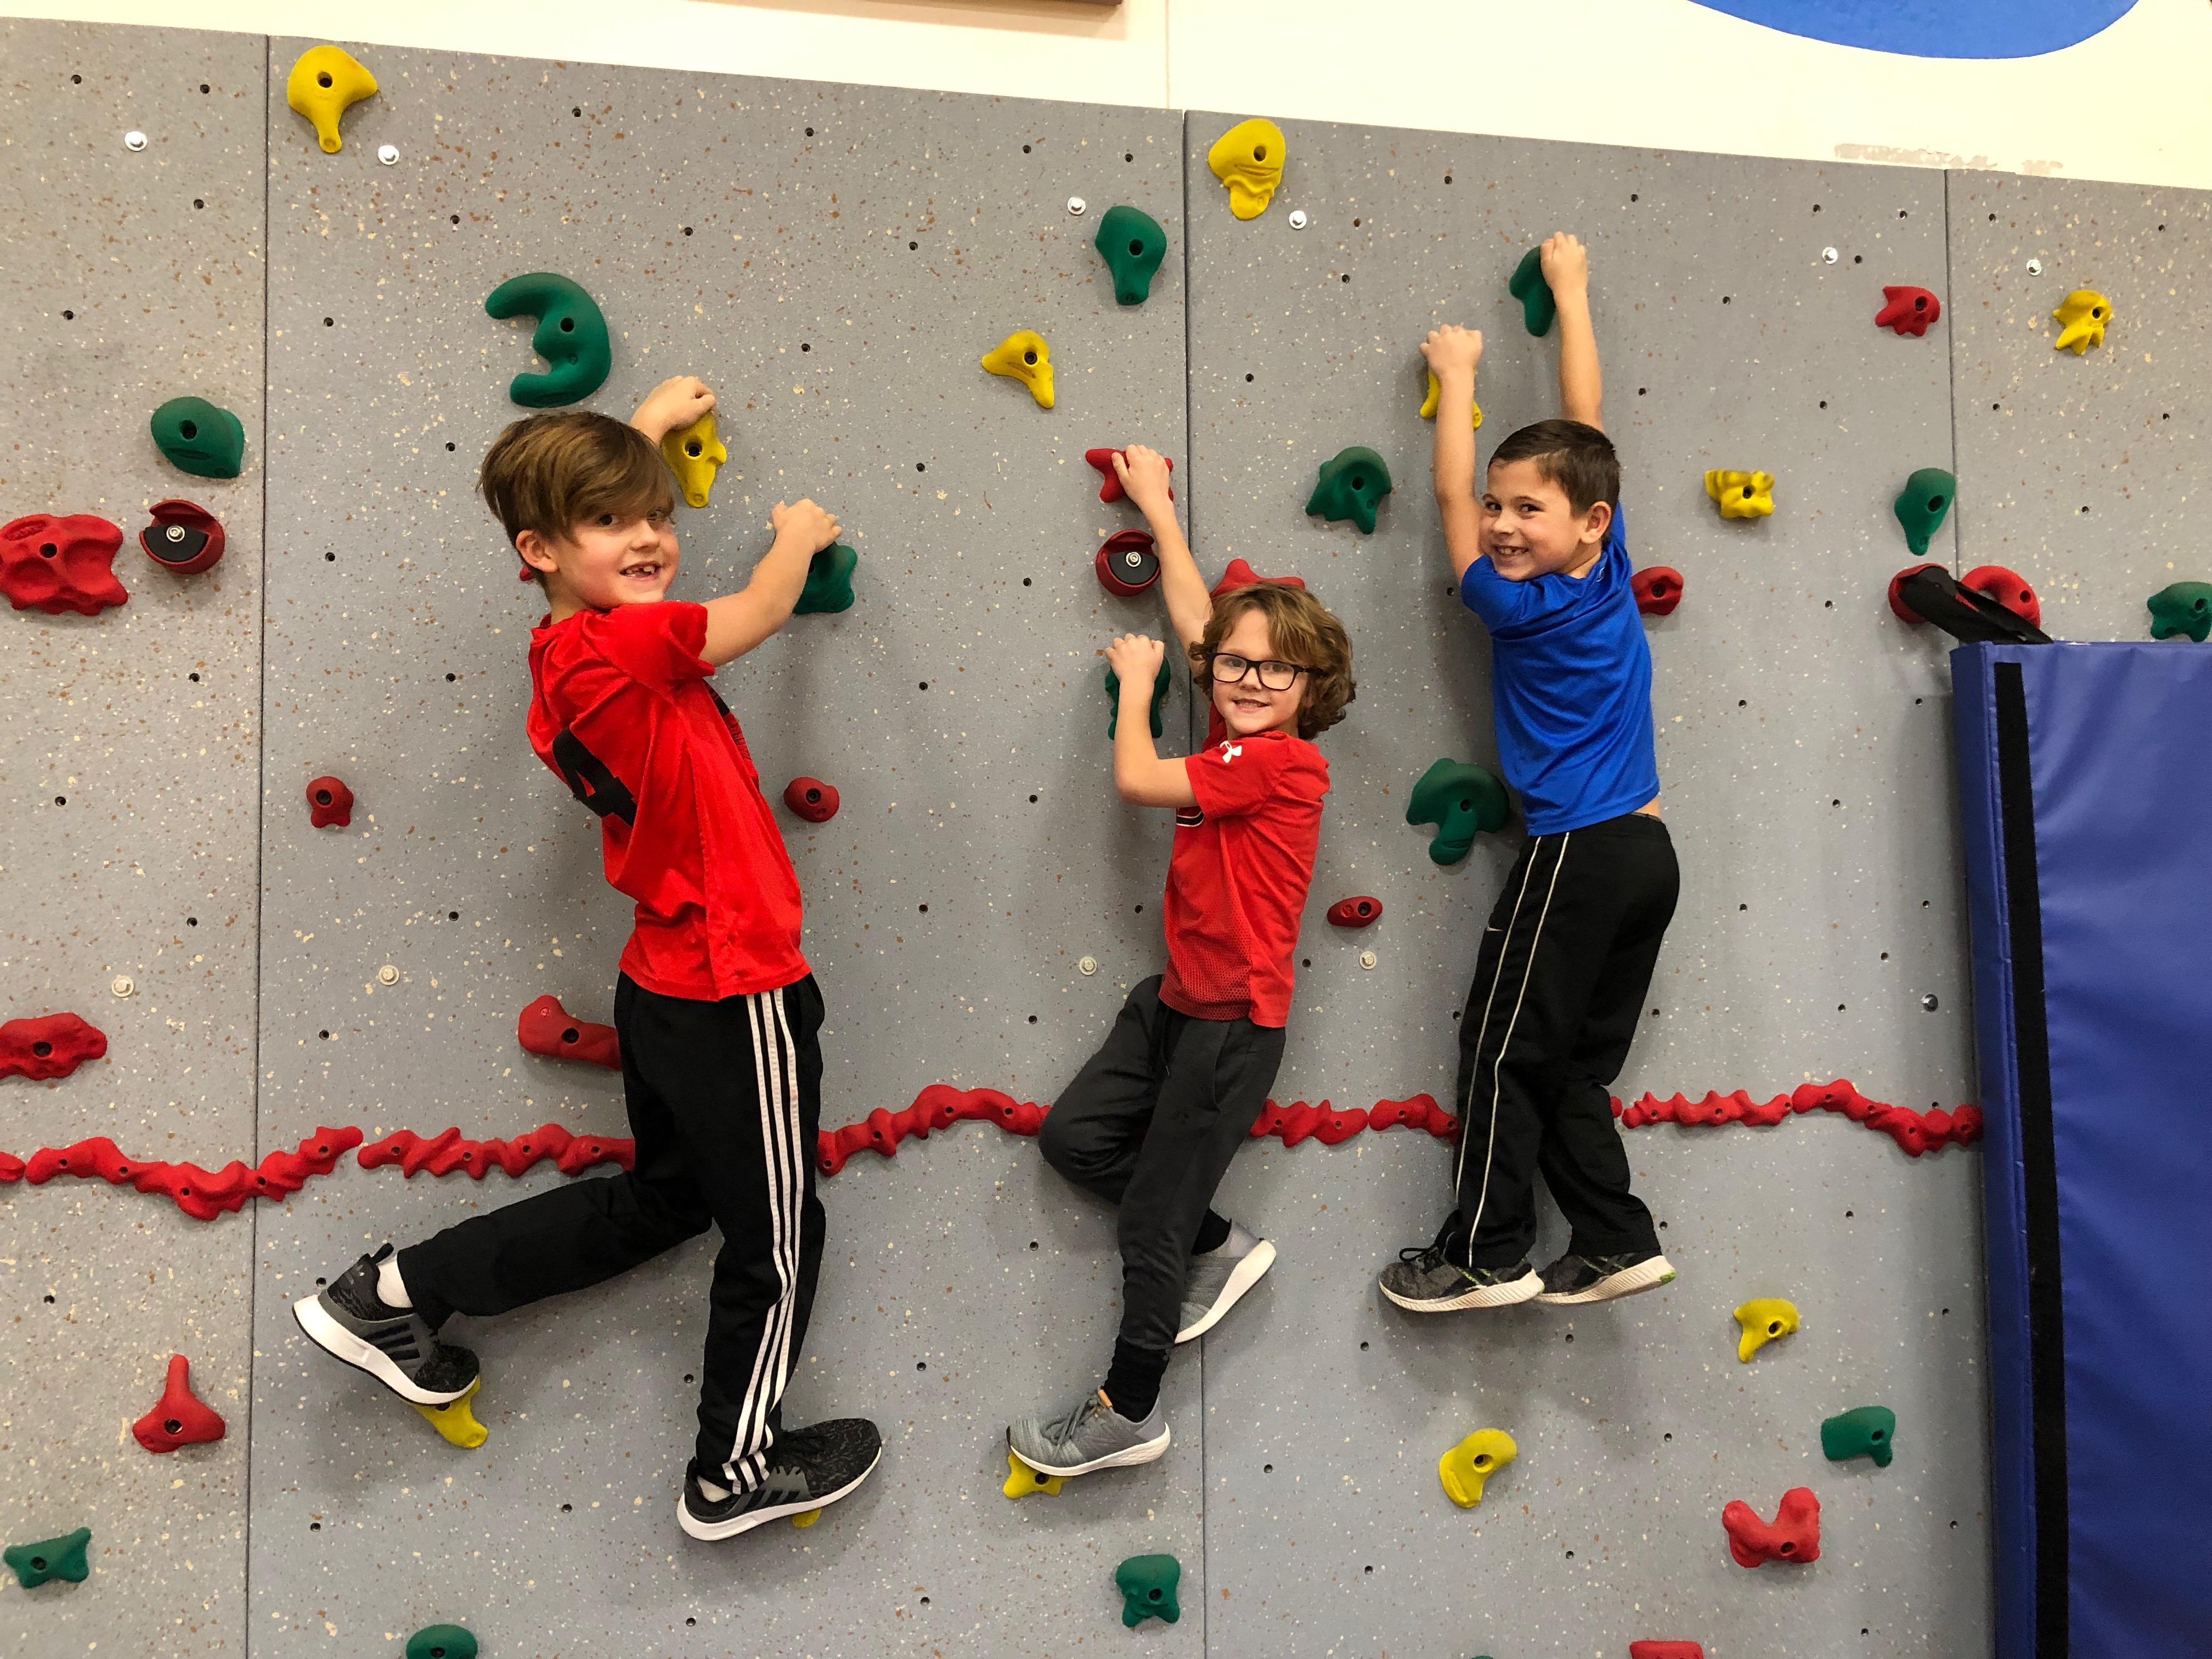 Three students practicing on a mountain climbing wall